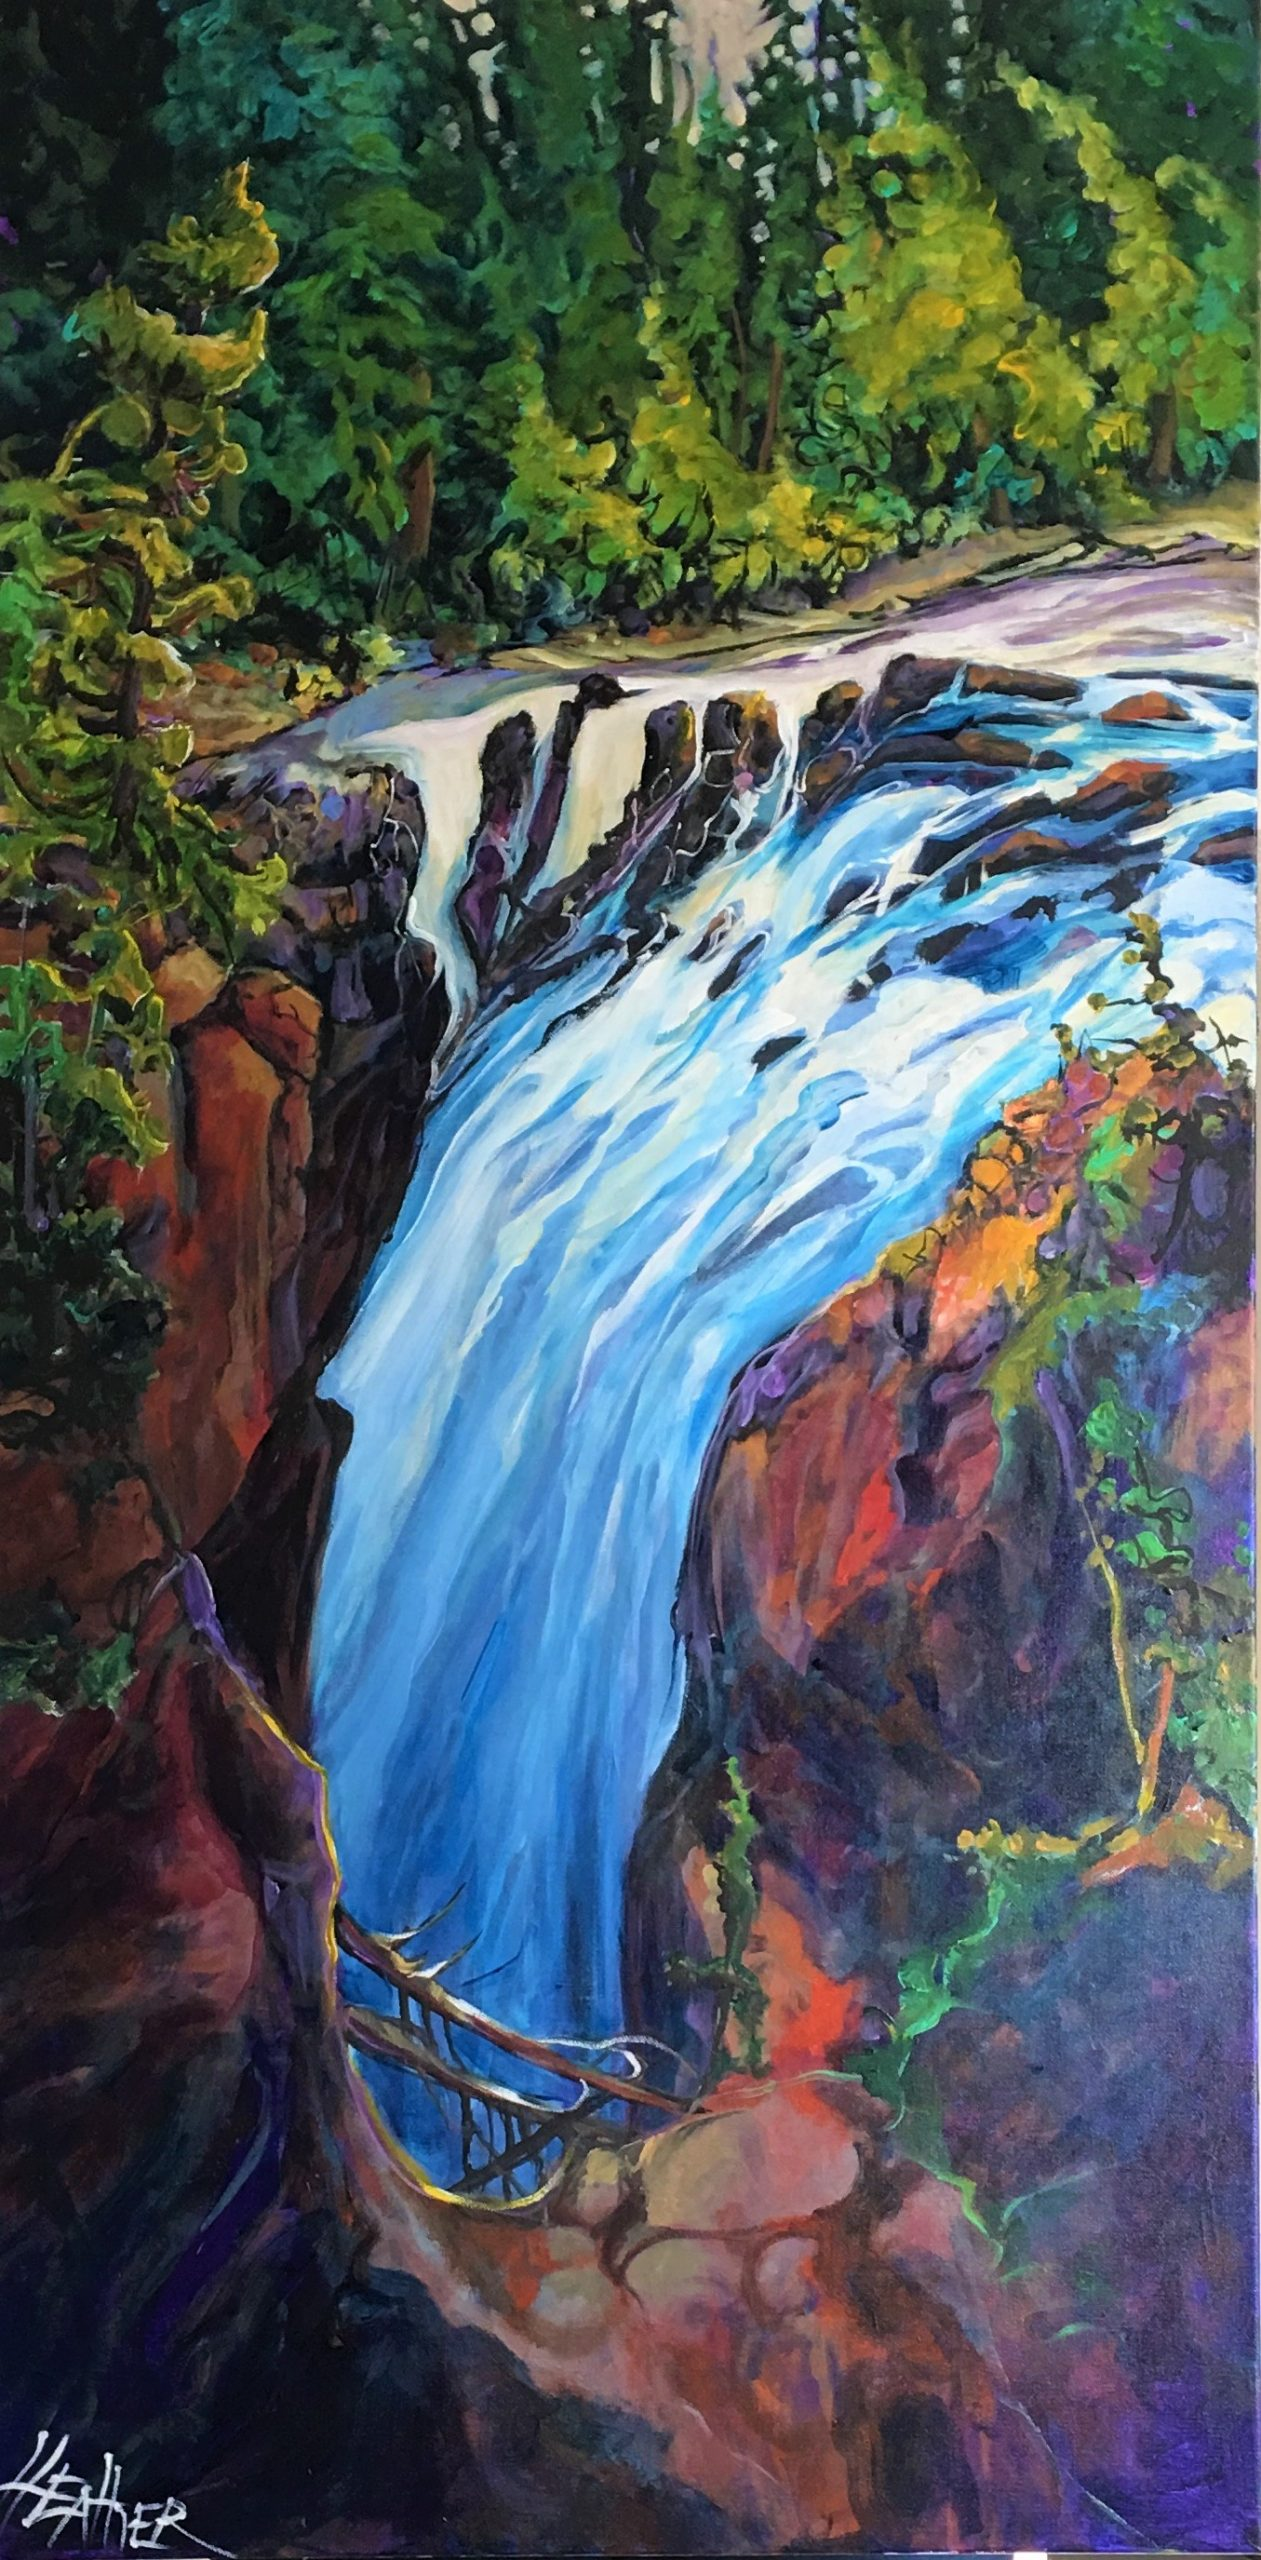 Top of the Falls, acrylic landscape by Heather Pant | Effusion Art Gallery + Cast Glass Studio, Invermere BC